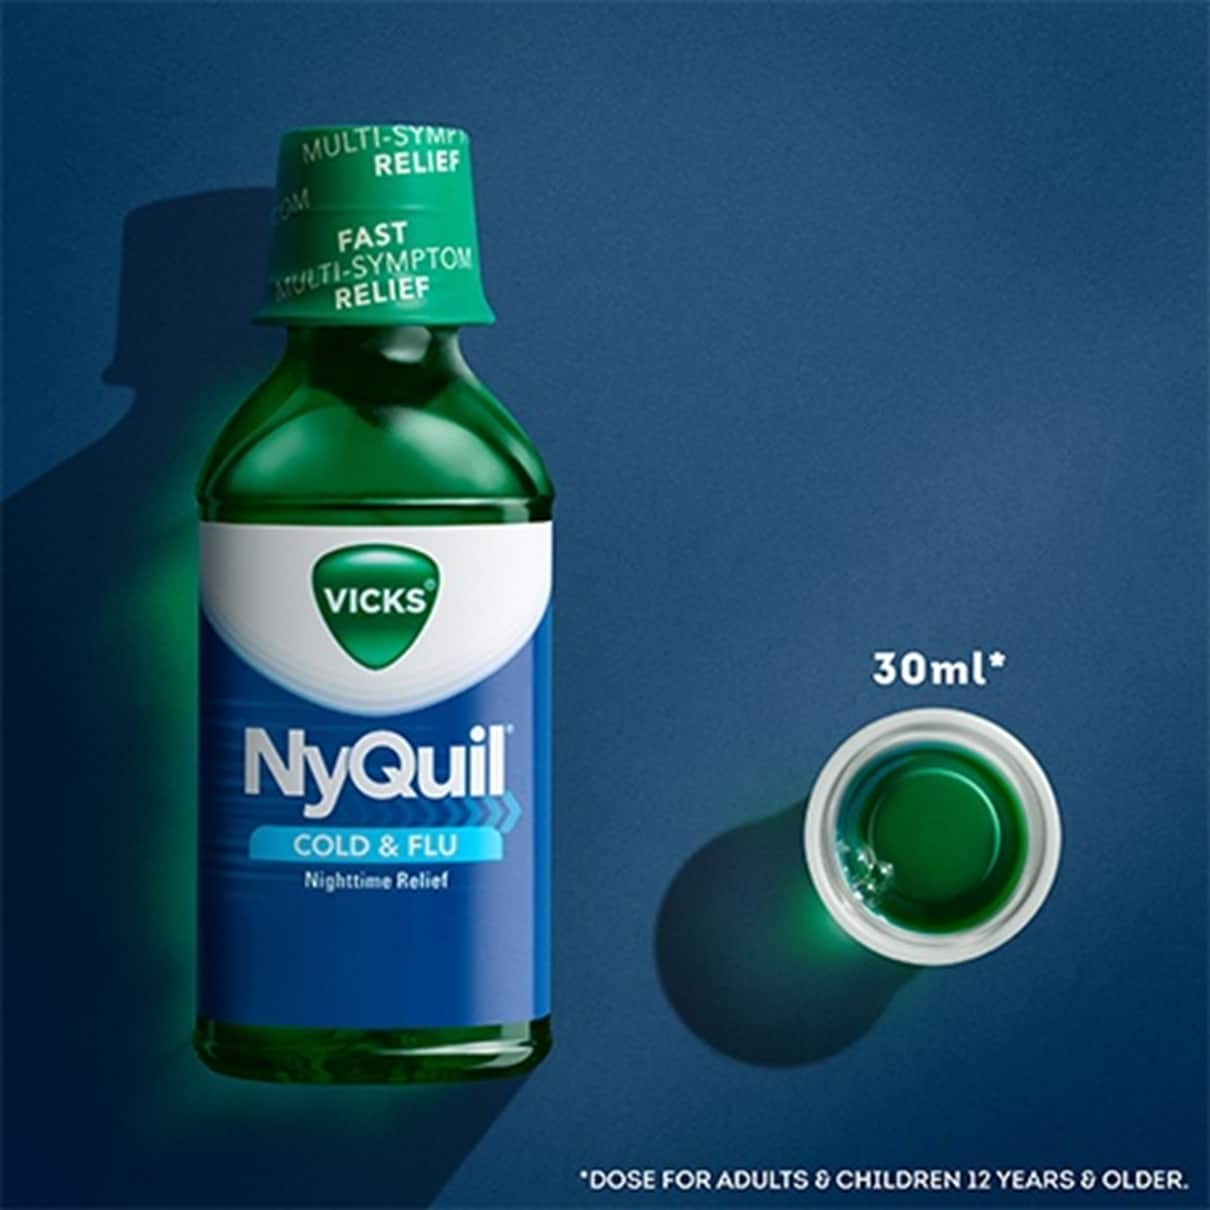 vicks nyquil cold flu nighttime relief 2